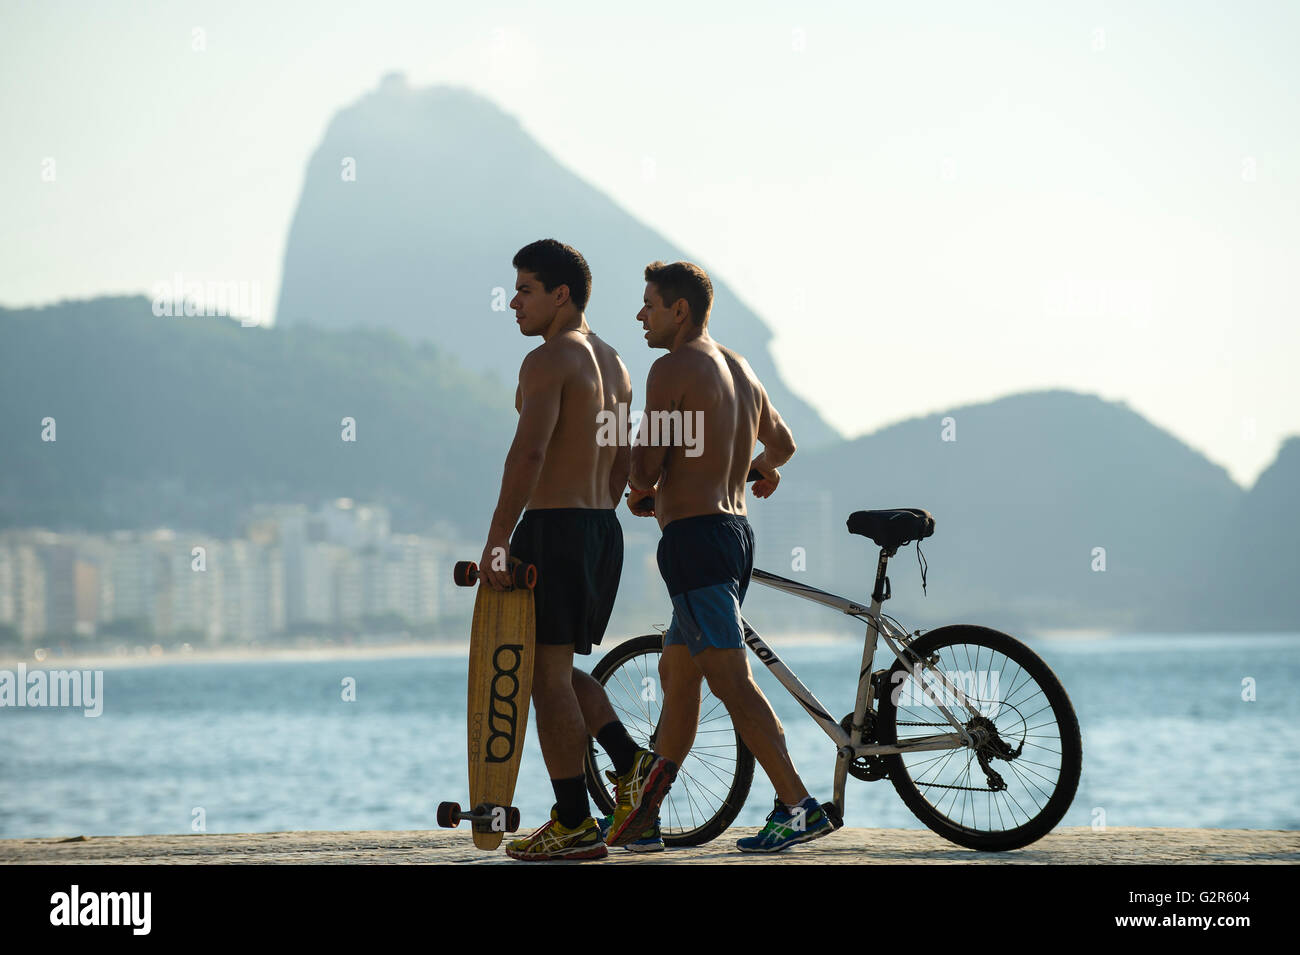 RIO DE JANEIRO - APRIL 3, 2016: Young carioca Brazilian men walk with bicycle and skateboard on the beachfront boardwalk. - Stock Image